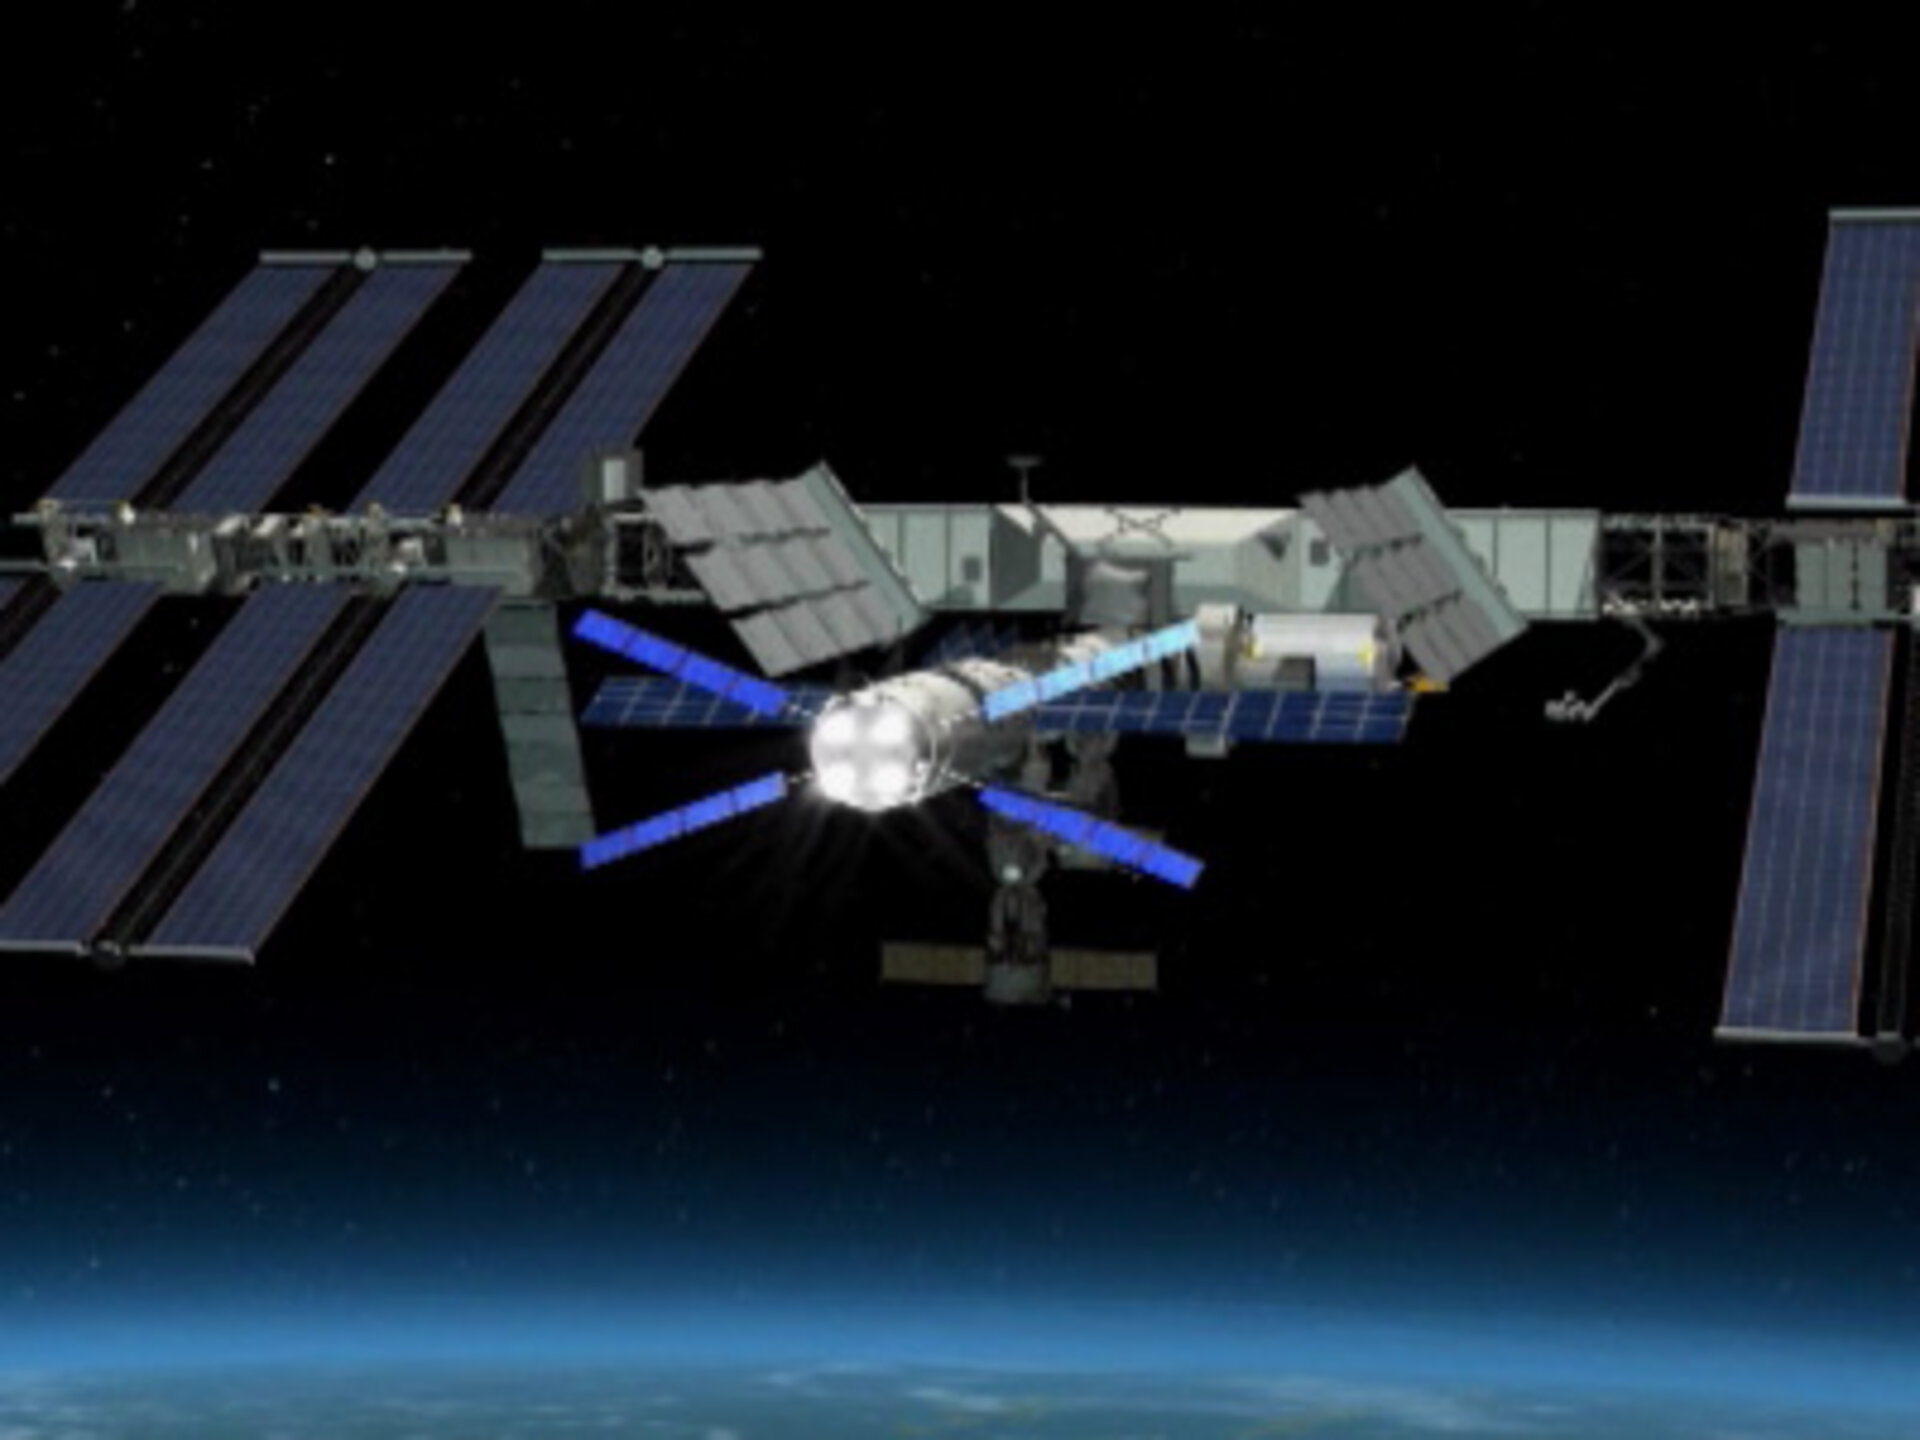 Yesterday's 20 minute burn of Jules Verne's main engines lifted the Space Station's orbit by 7 km